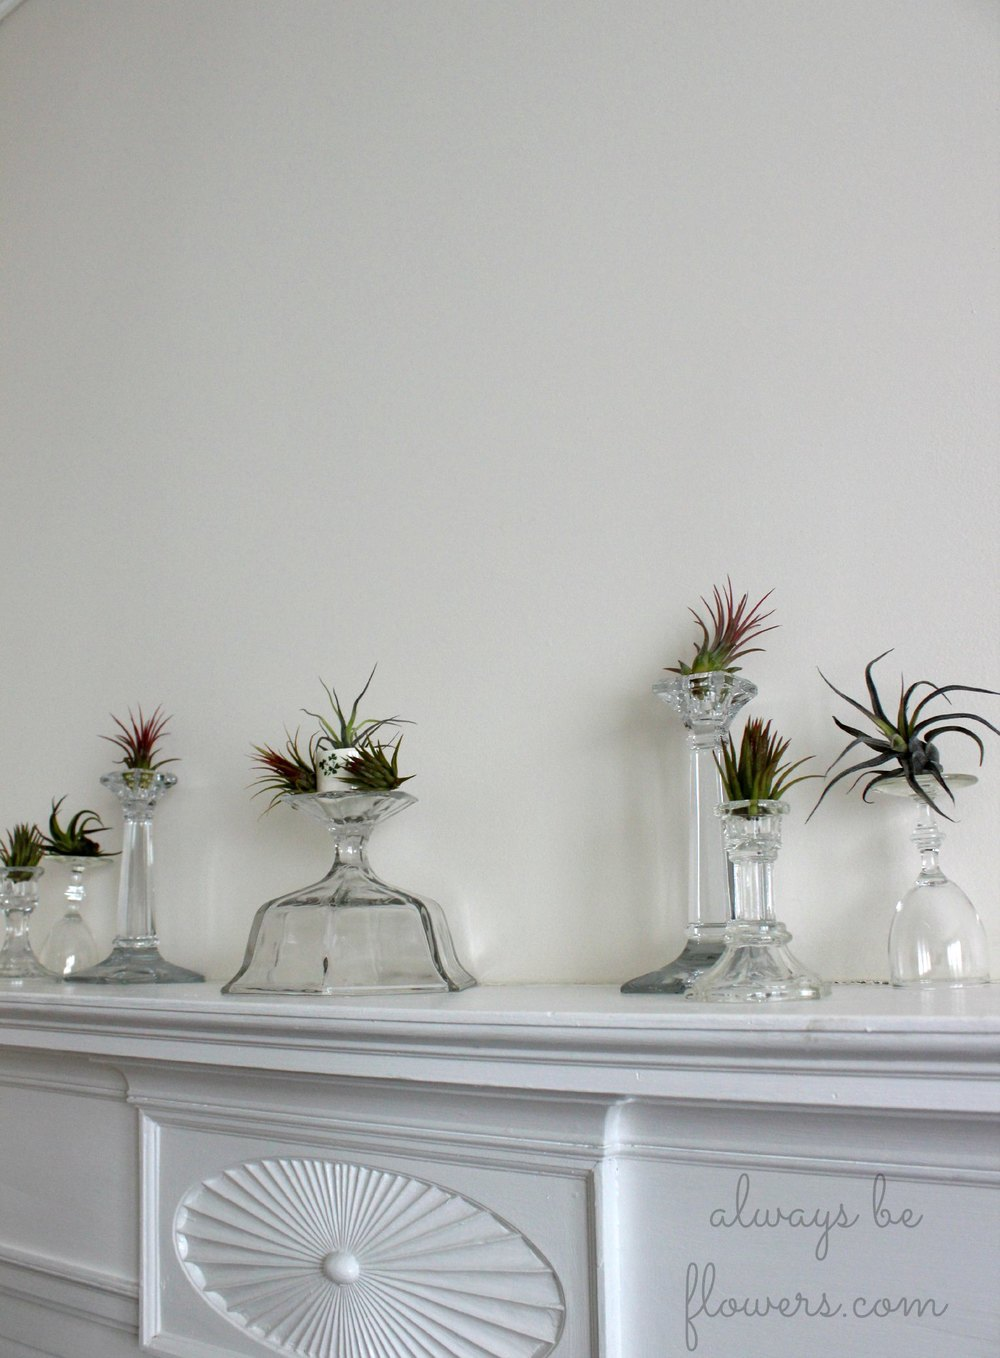 Glass candlestick holders add vertical interest to the air plants.